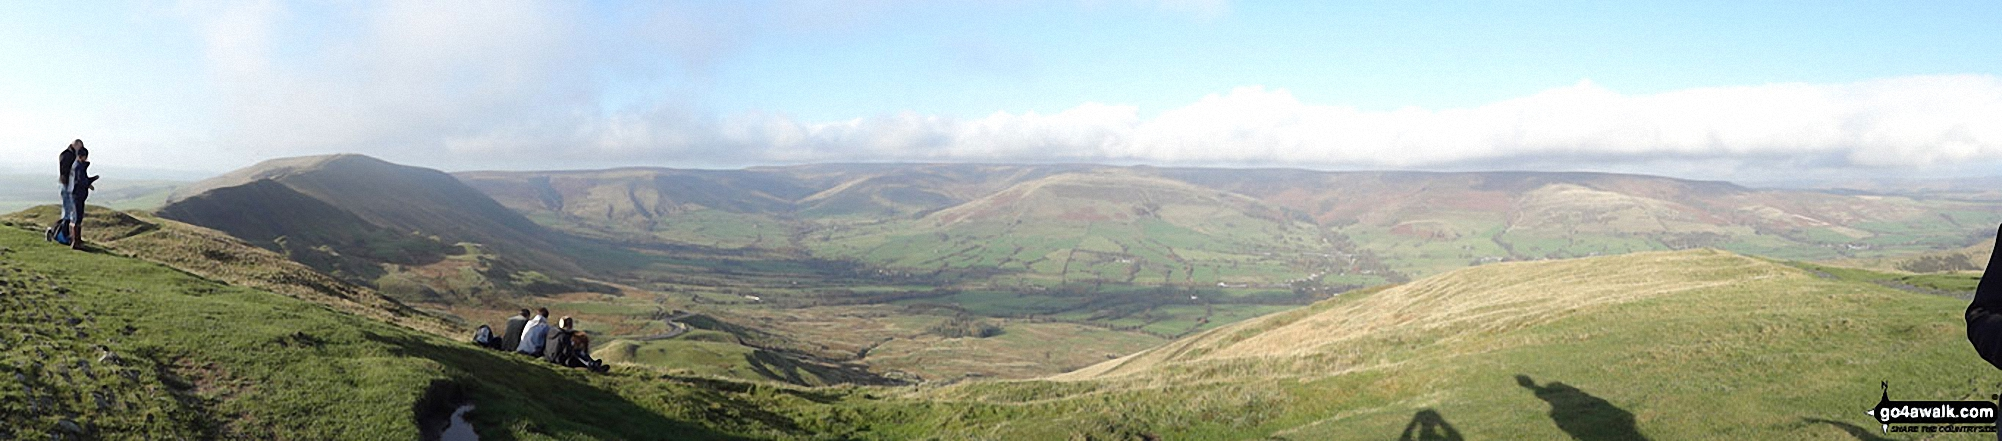 Lord's Seat (Rushup Edge) (left), Brown Knoll, Kinder Scout and The Vale of Edale from the summit of Mam Tor